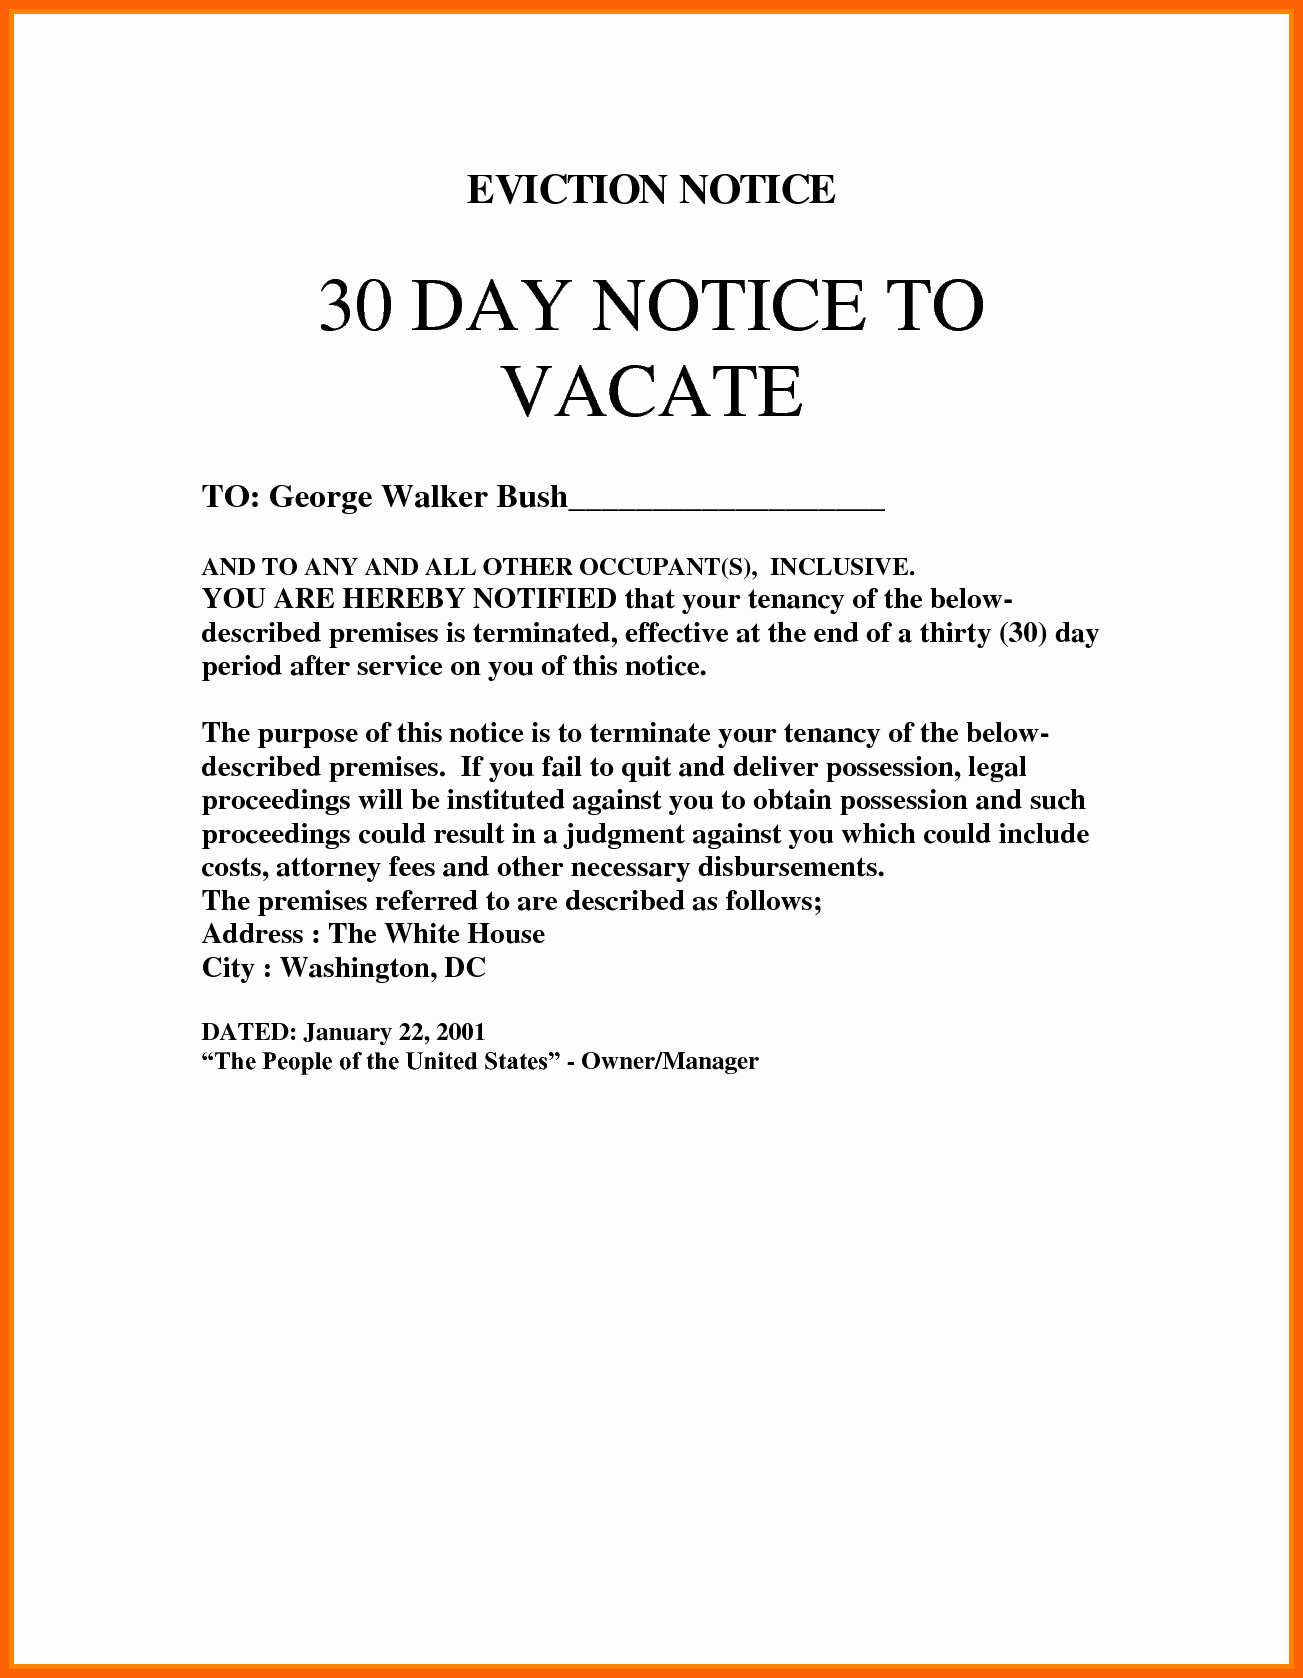 Eviction Notice Template Nc Beautiful 30 Day Eviction Notice Template